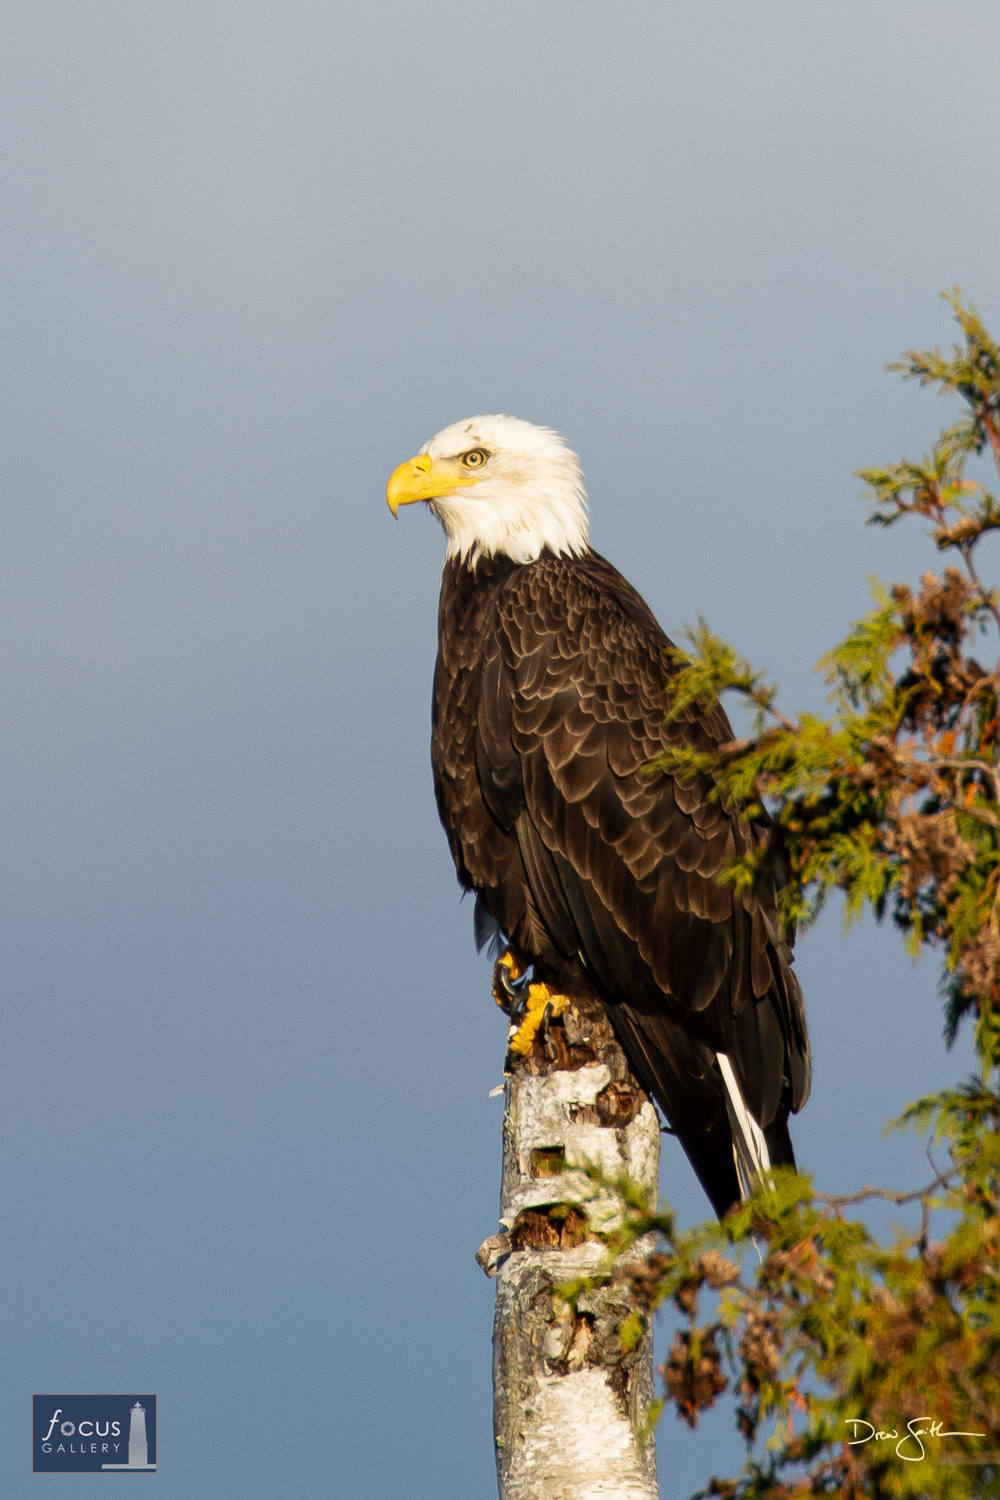 Photo © Drew Smith While driving down M-22 I came around a bend in the road and saw this beautiful Bald Eagle sitting perched...